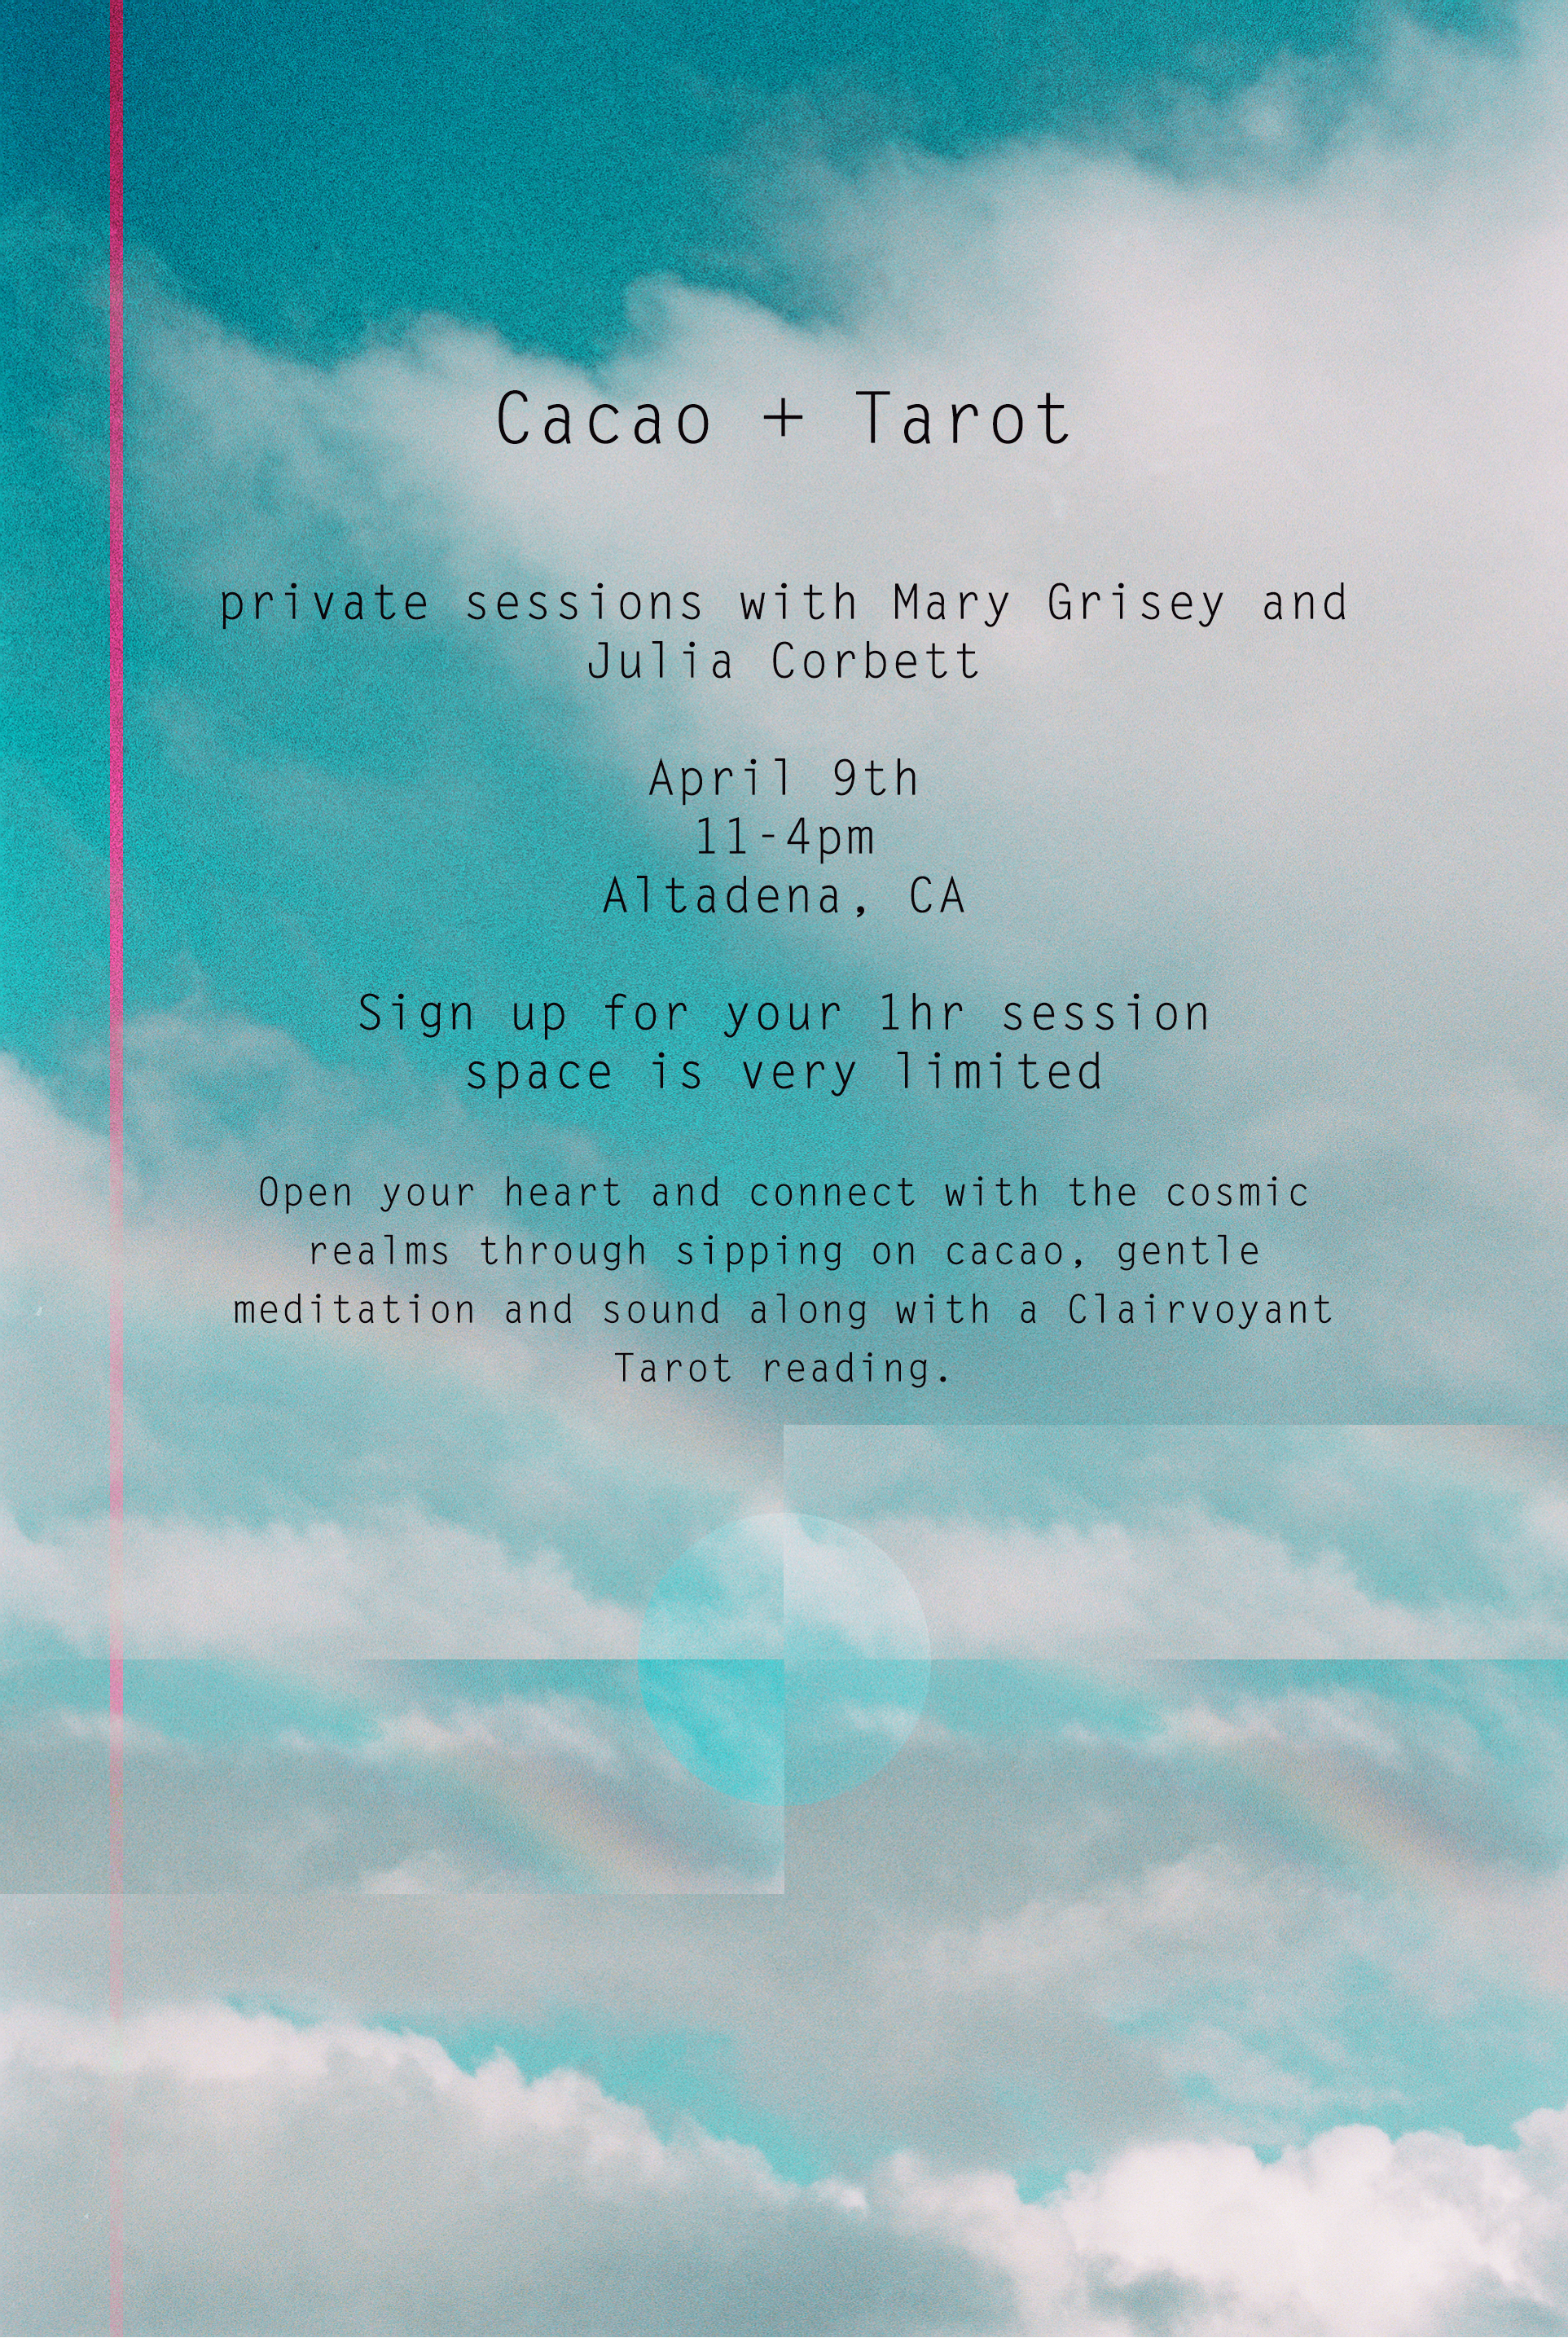 cacao and tarot private session 2.jpg